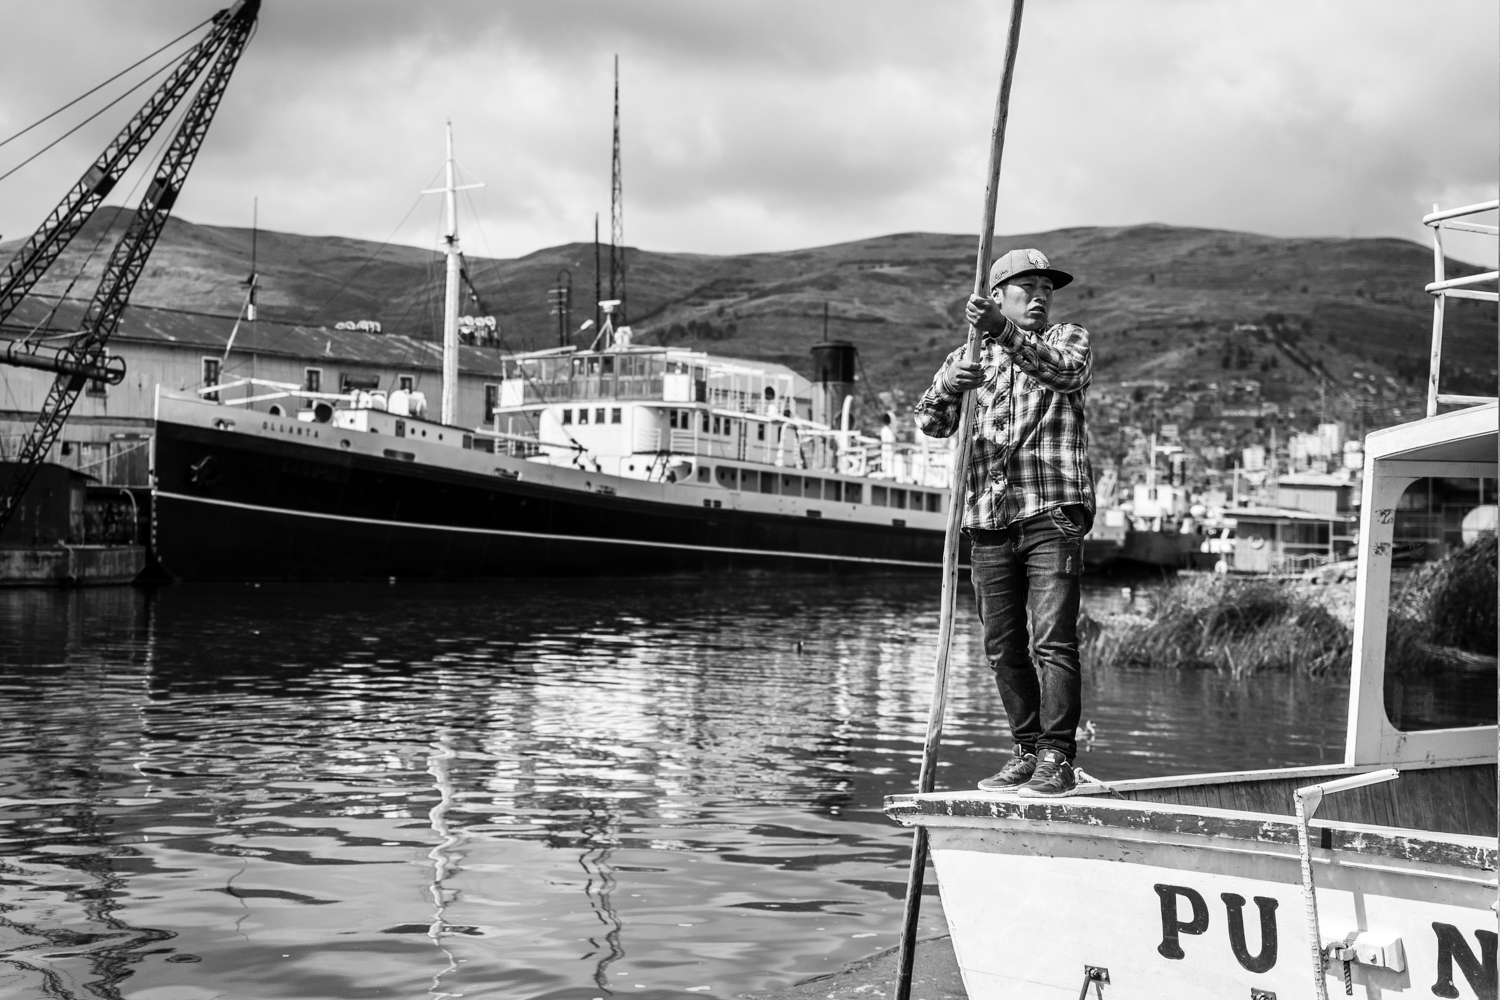 A sailor is ready to take off as he carries locals and tourists from the city of Puno to the islands. Tourism on lake Titicaca has become a decent source of revenues for a lot of families, as the fishing industry is collapsing.